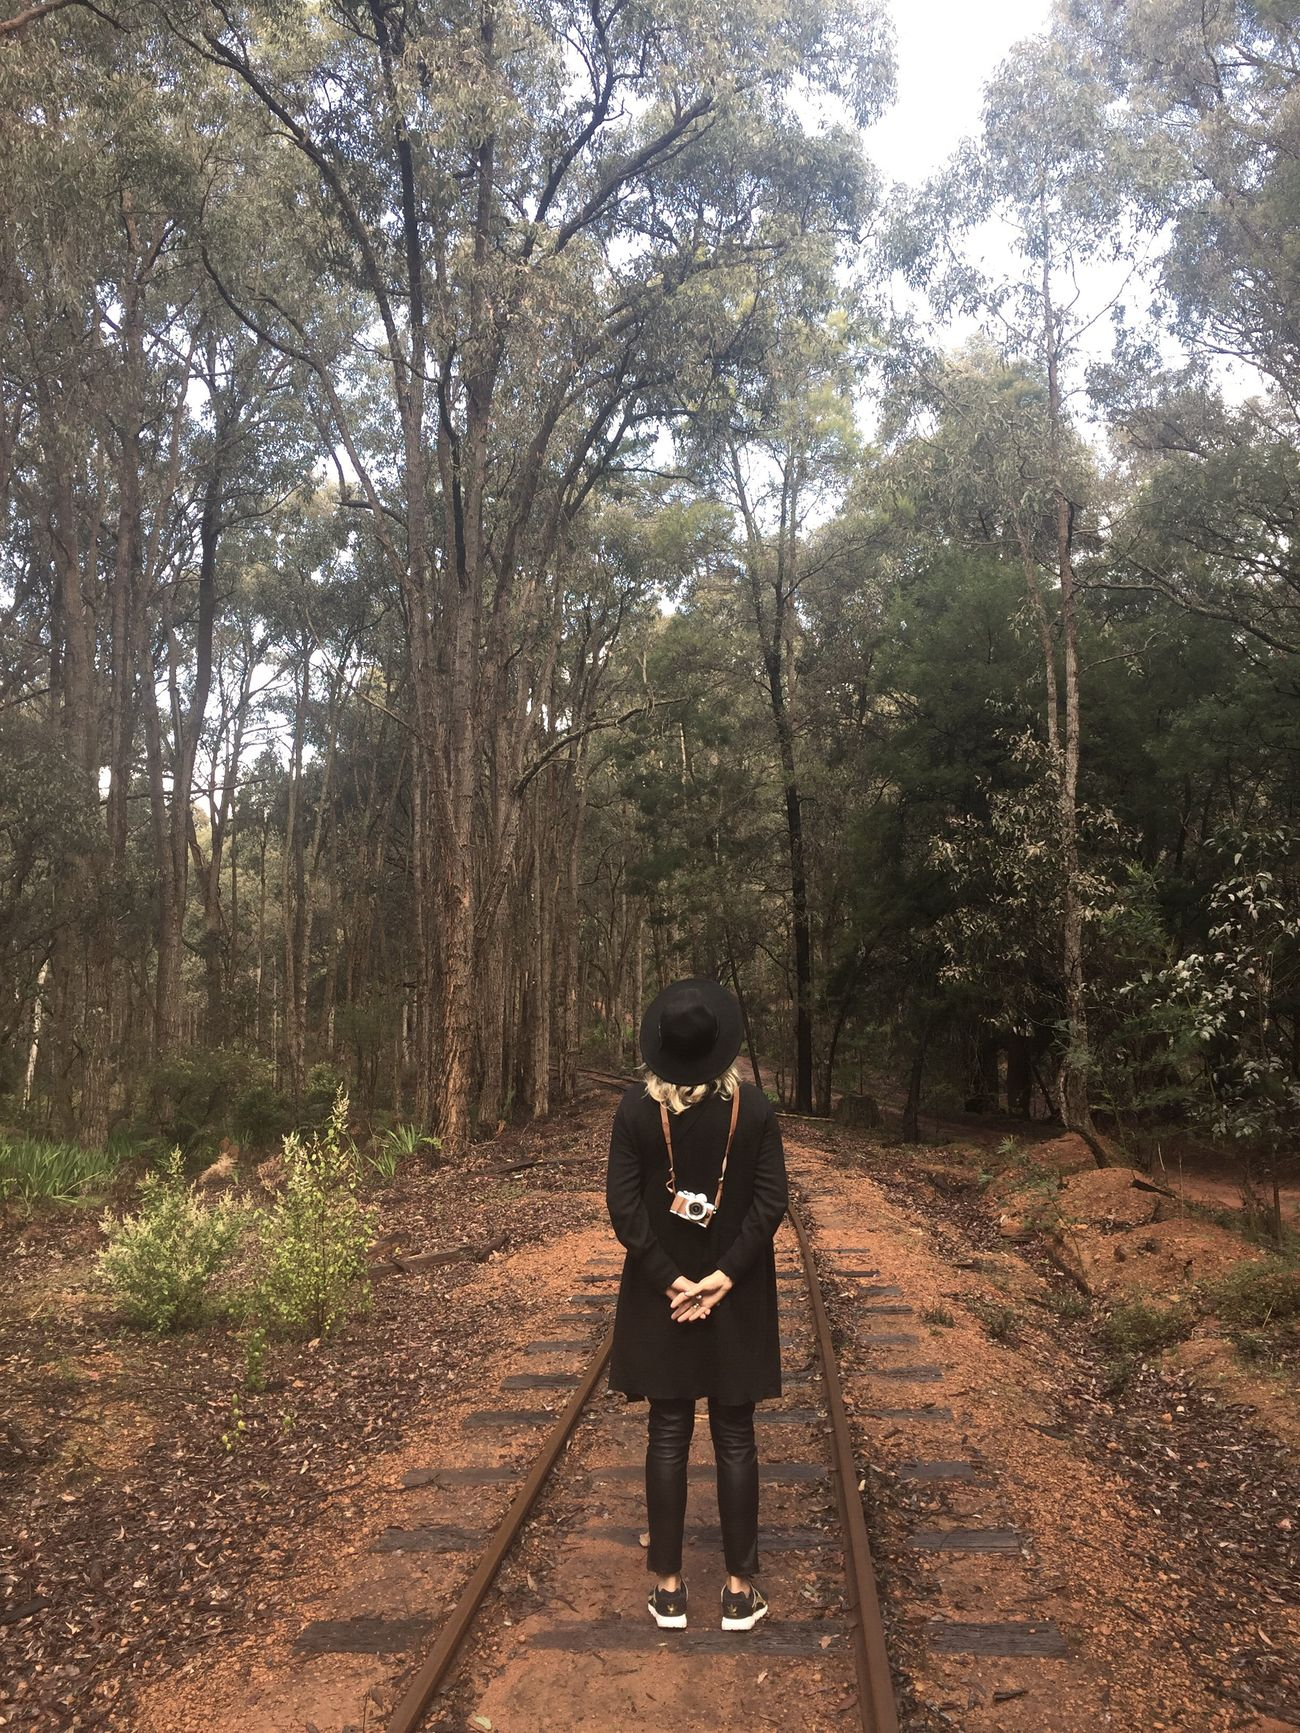 "The Culture Of The Holidays TheMinimals (less Edit Juxt Photography) Diminishing Perspective Vanishing Point Nature Tree Forest Shootermag Mermaid Full Length Shootermag_australia The Purist (no Edit, No Filter) ""if you go down to the woods today..."""